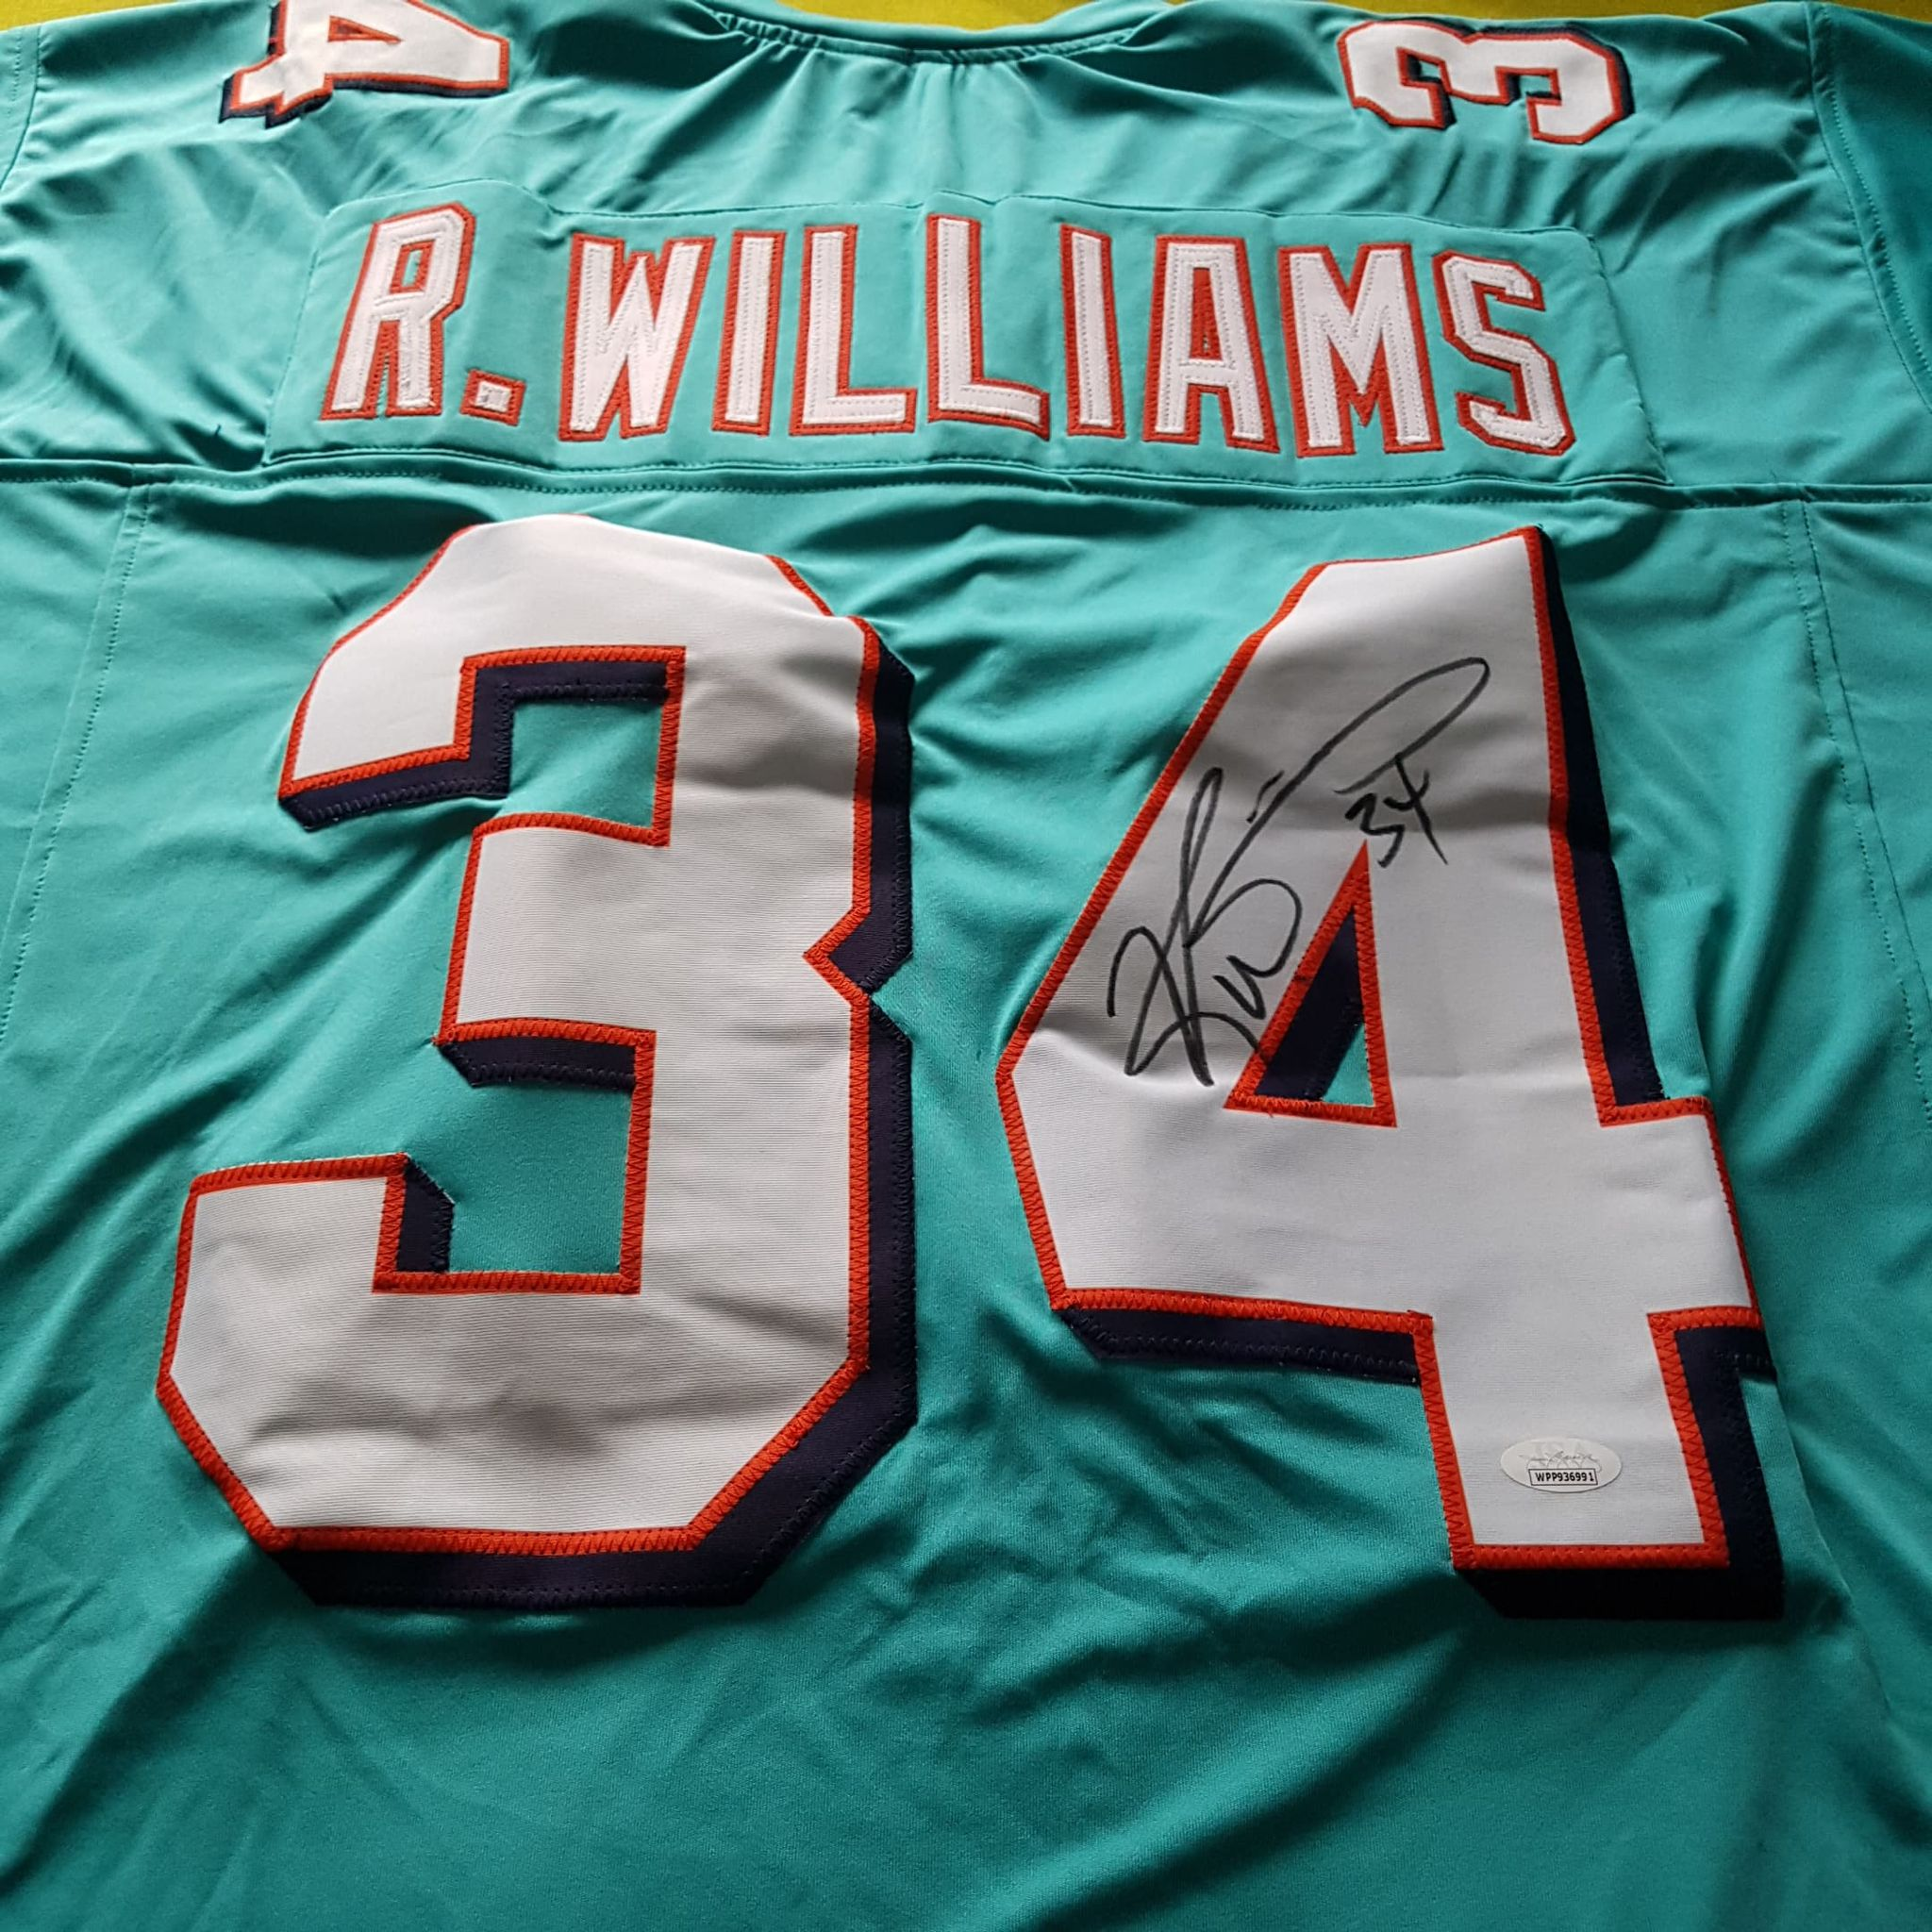 Ricky Williams - Miami Dolphins Running Back - Signed Jersey (JSA Certificate of Authenticity)